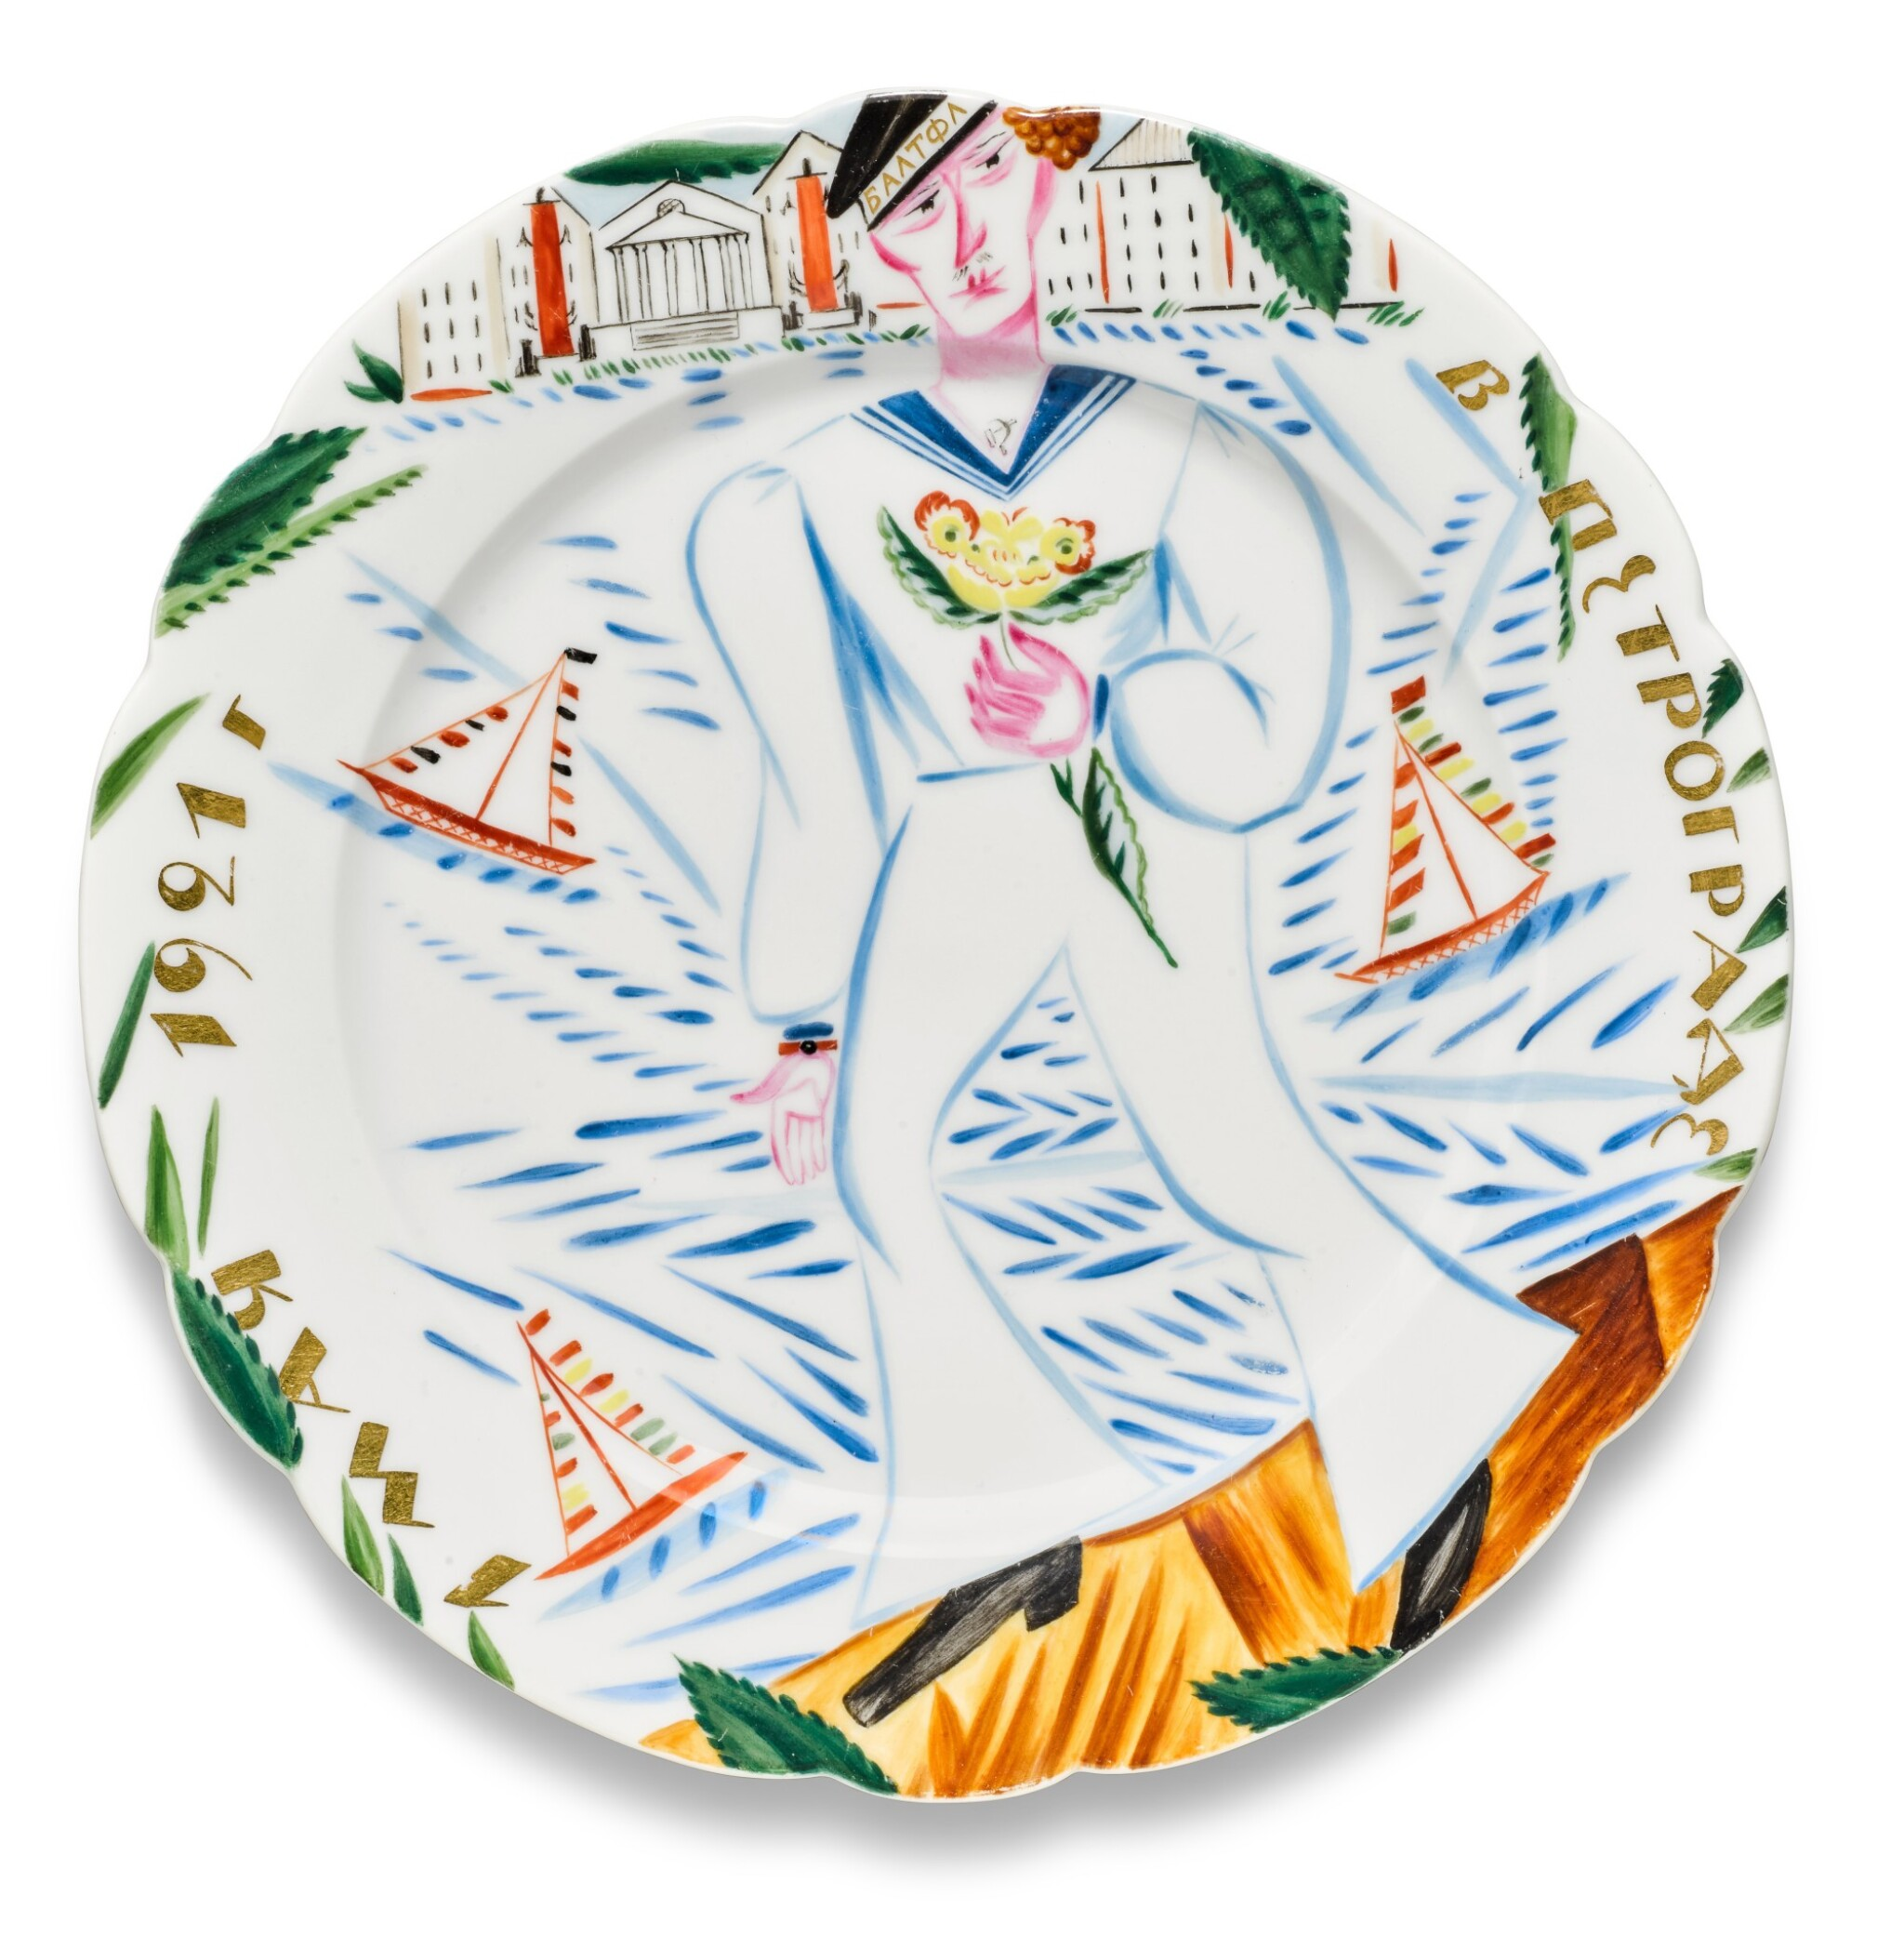 View full screen - View 1 of Lot 180. The Sailor Takes a Walk: A Soviet Propaganda porcelain plate, State Porcelain Factory, Petrograd, 1921.